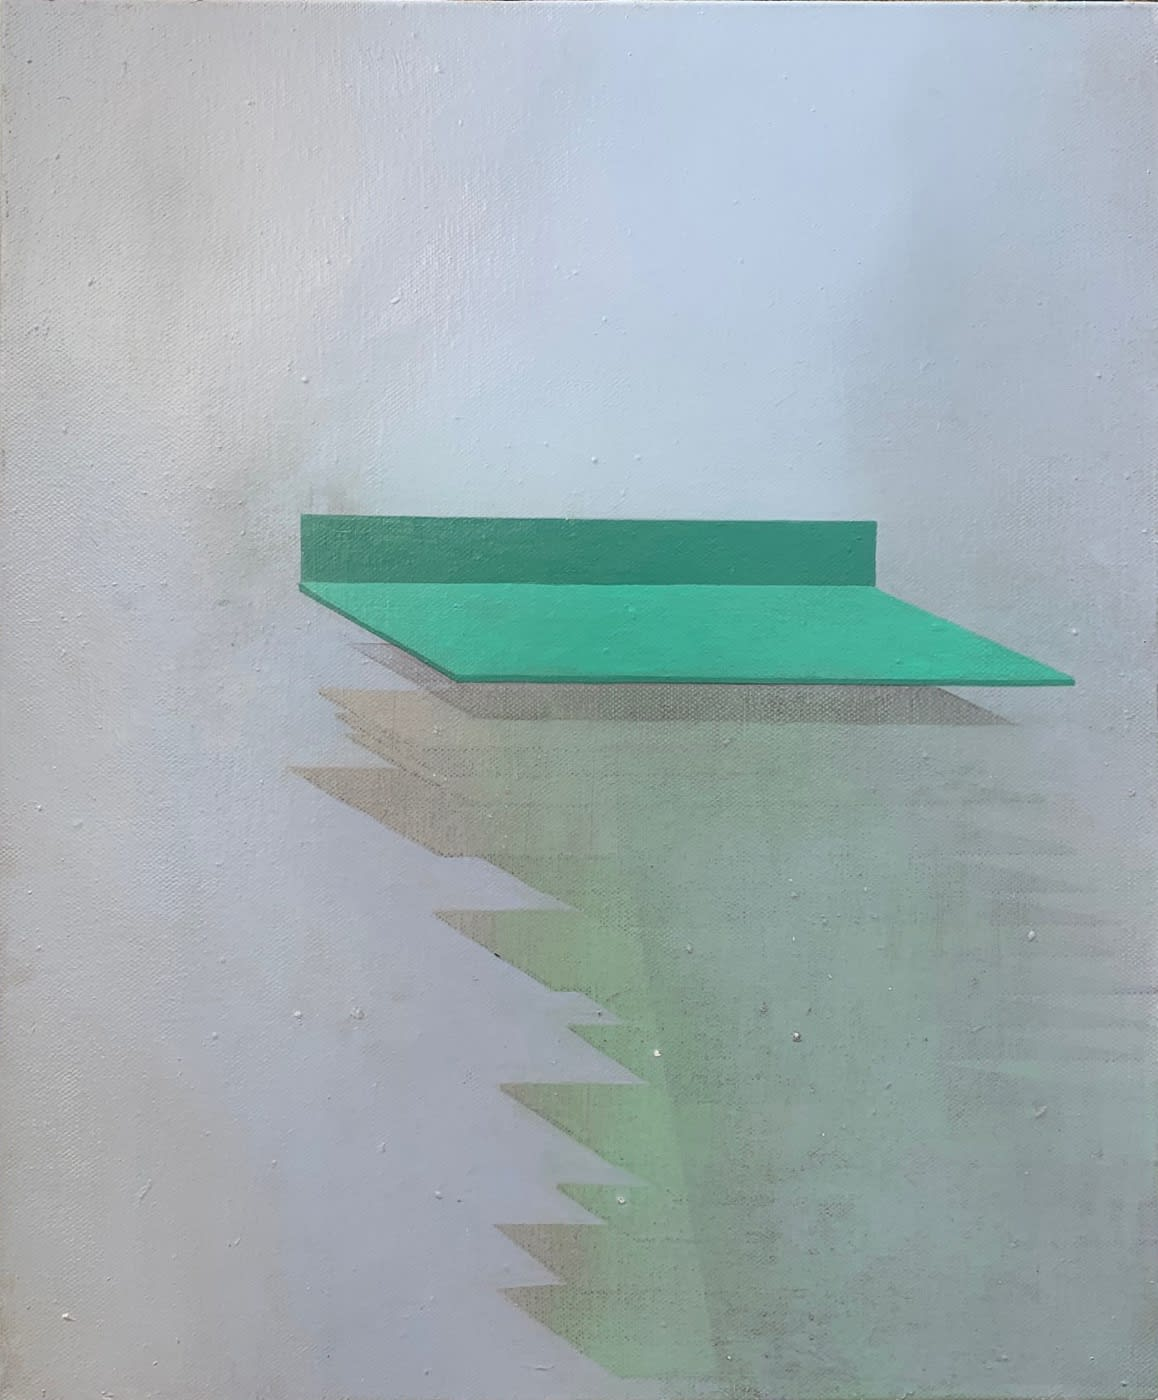 Gillian Lawler Platform II Oil on canvas 50 x 40 cm